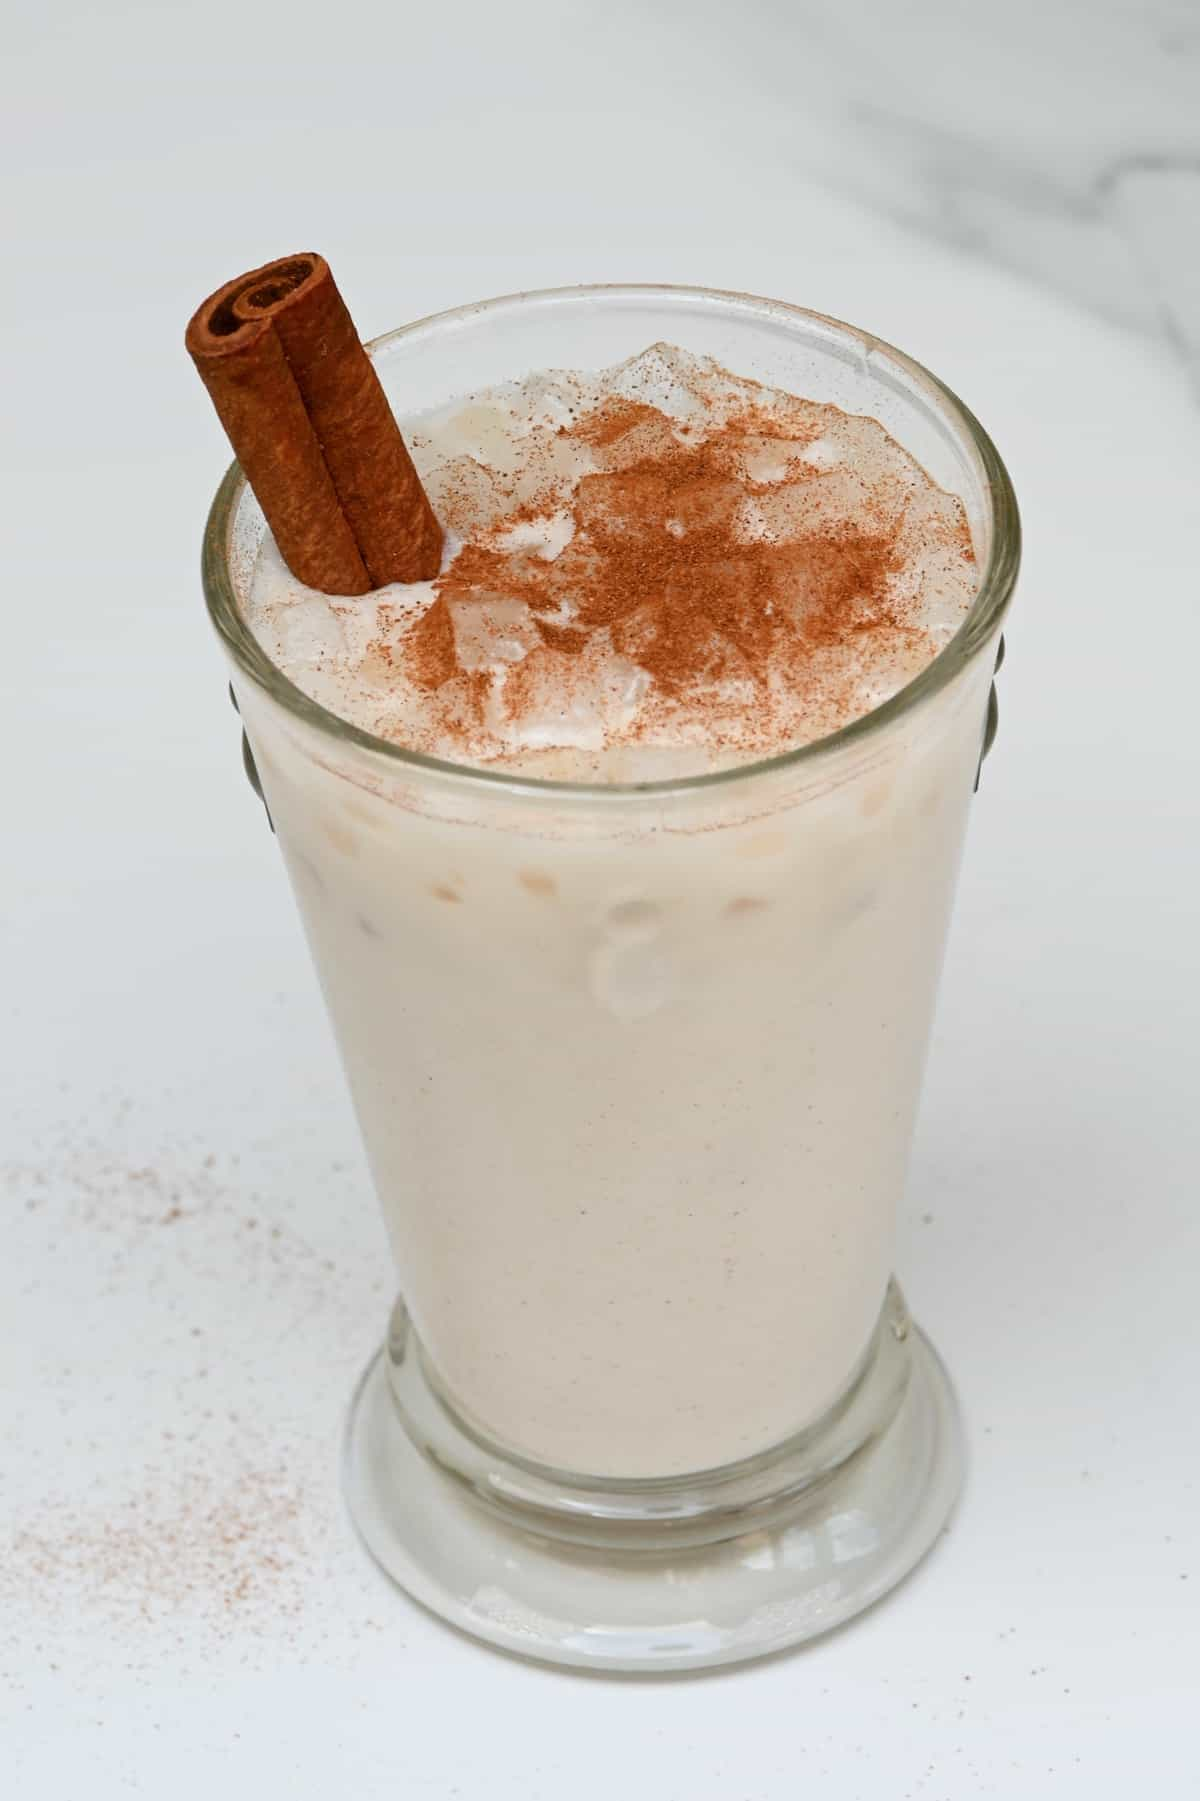 A glass with Mexican horchata topped with cinnamon powder